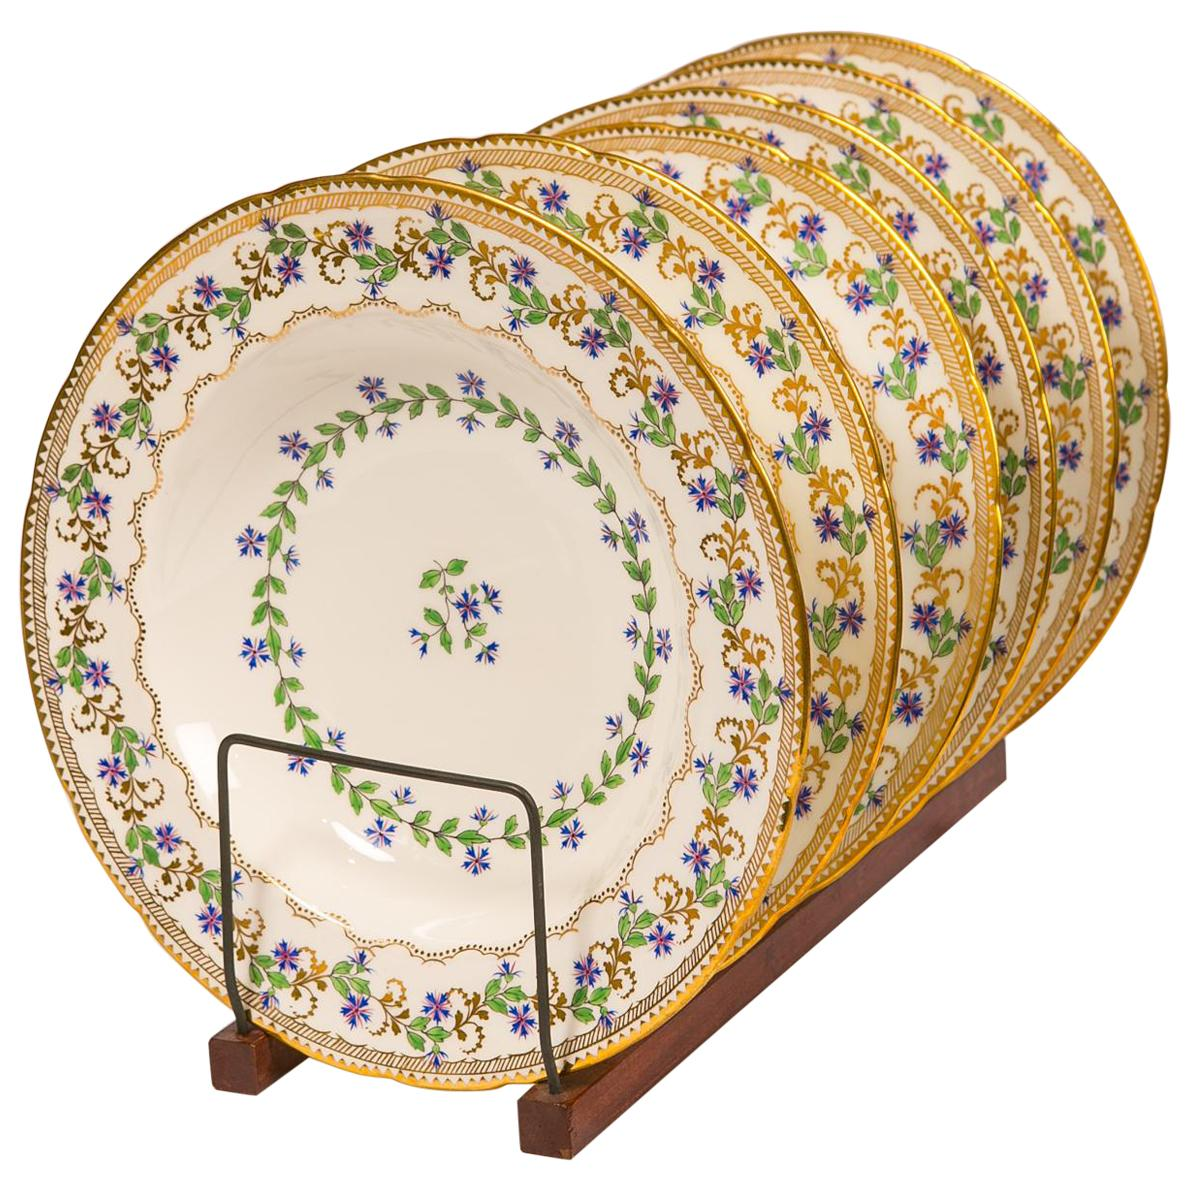 Sprig Decorated Set of Large Soup Dishes Made in England circa 1880